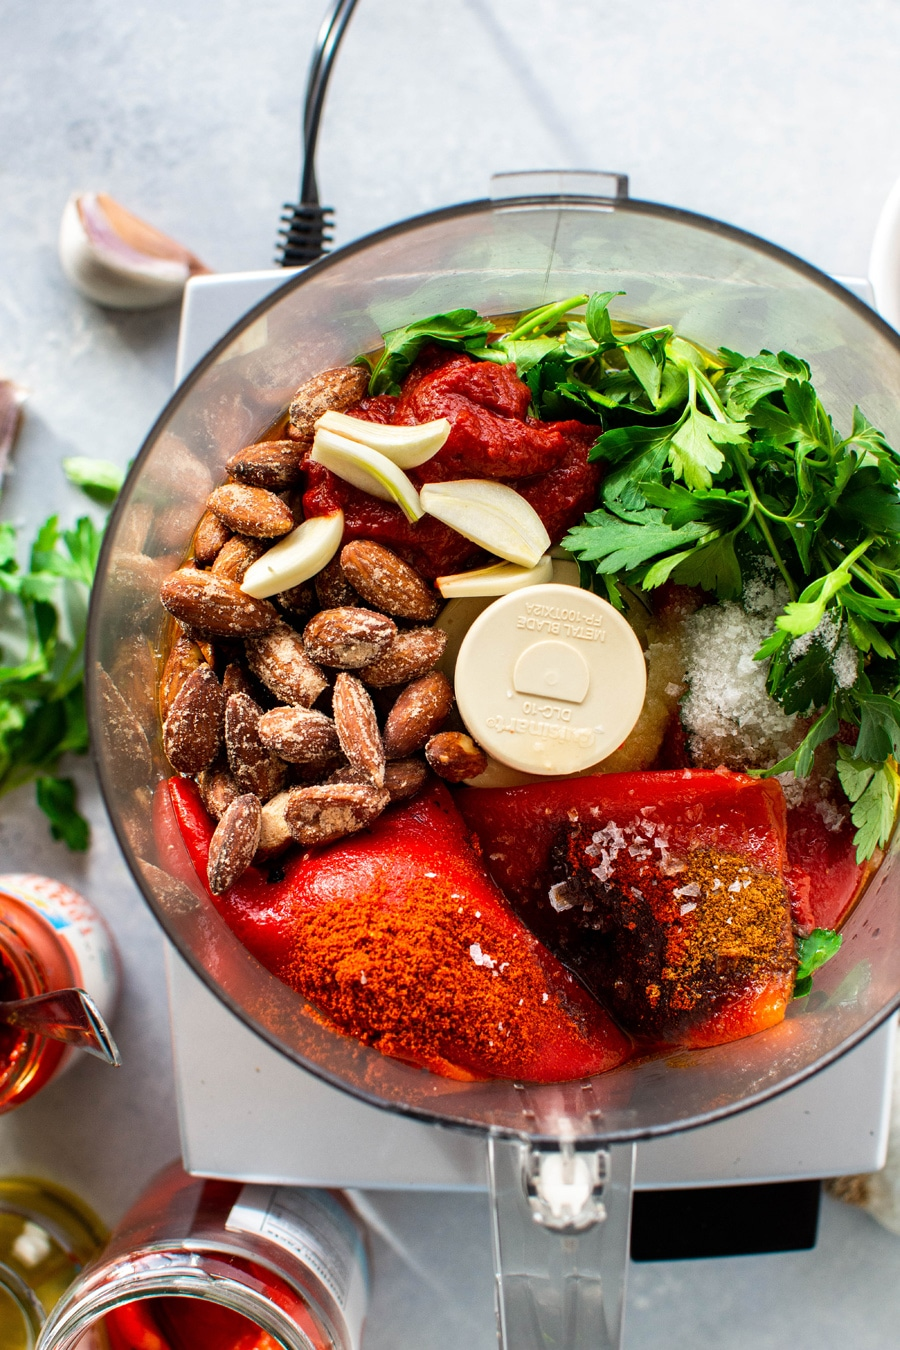 Overhead view of a food processor filled with all the ingredients for this fast and easy romesco sauce - roasted red peppers, almonds, garlic, parsley, spices, and salt.